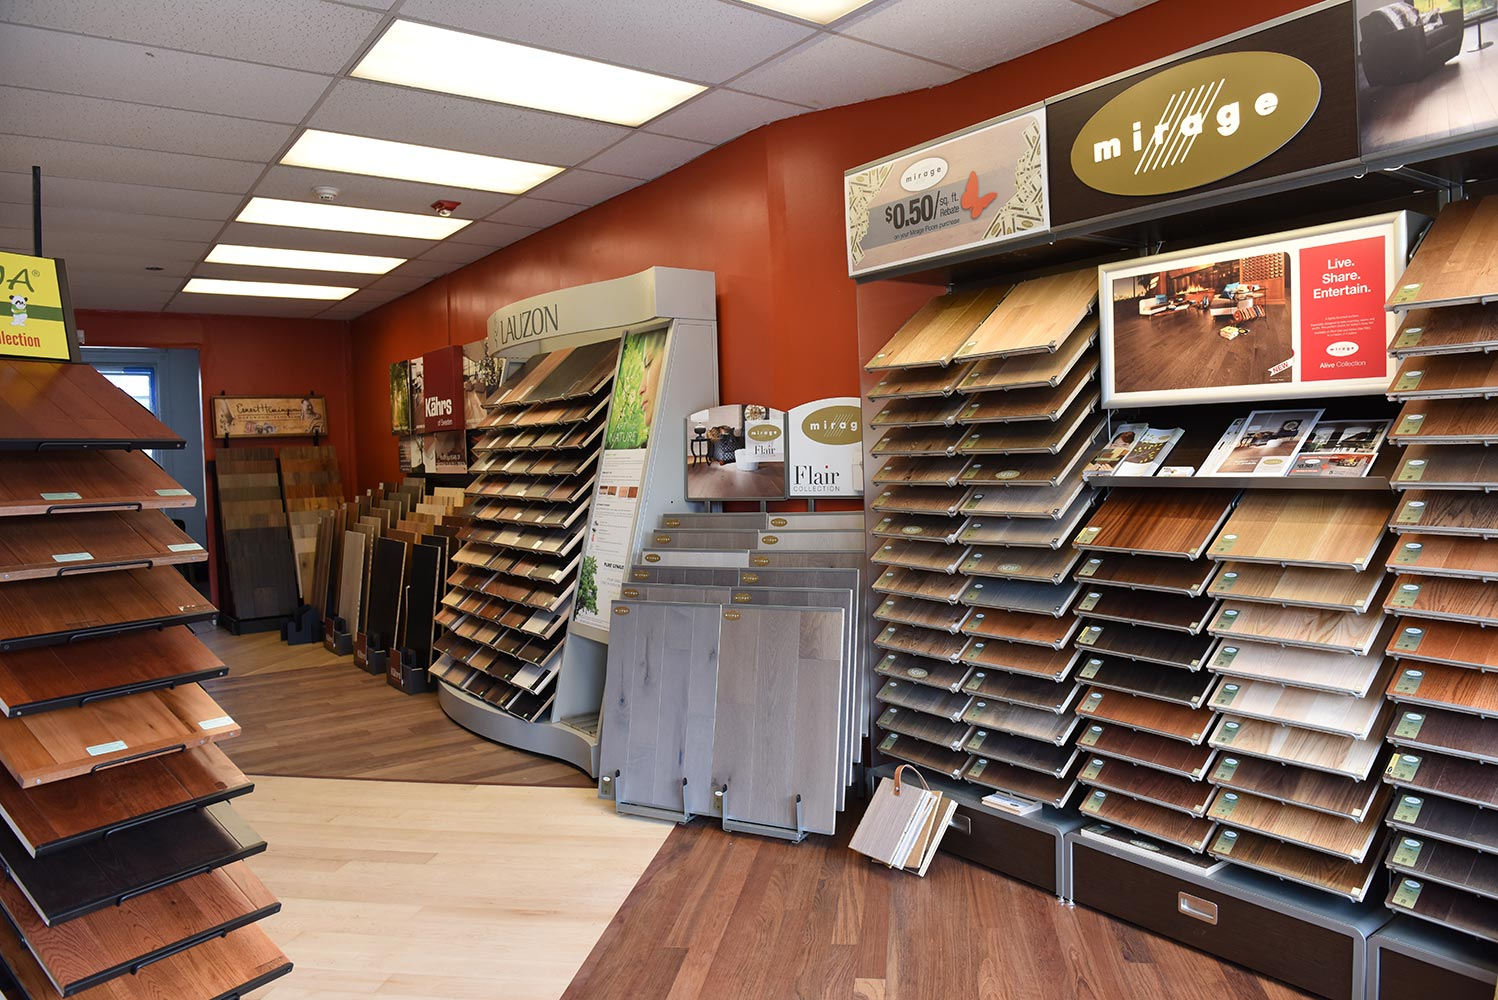 Wood Floor Planet Inc. Showroom at 425 W 46th St. New York, NY 10036 tel: 212-252-3838.